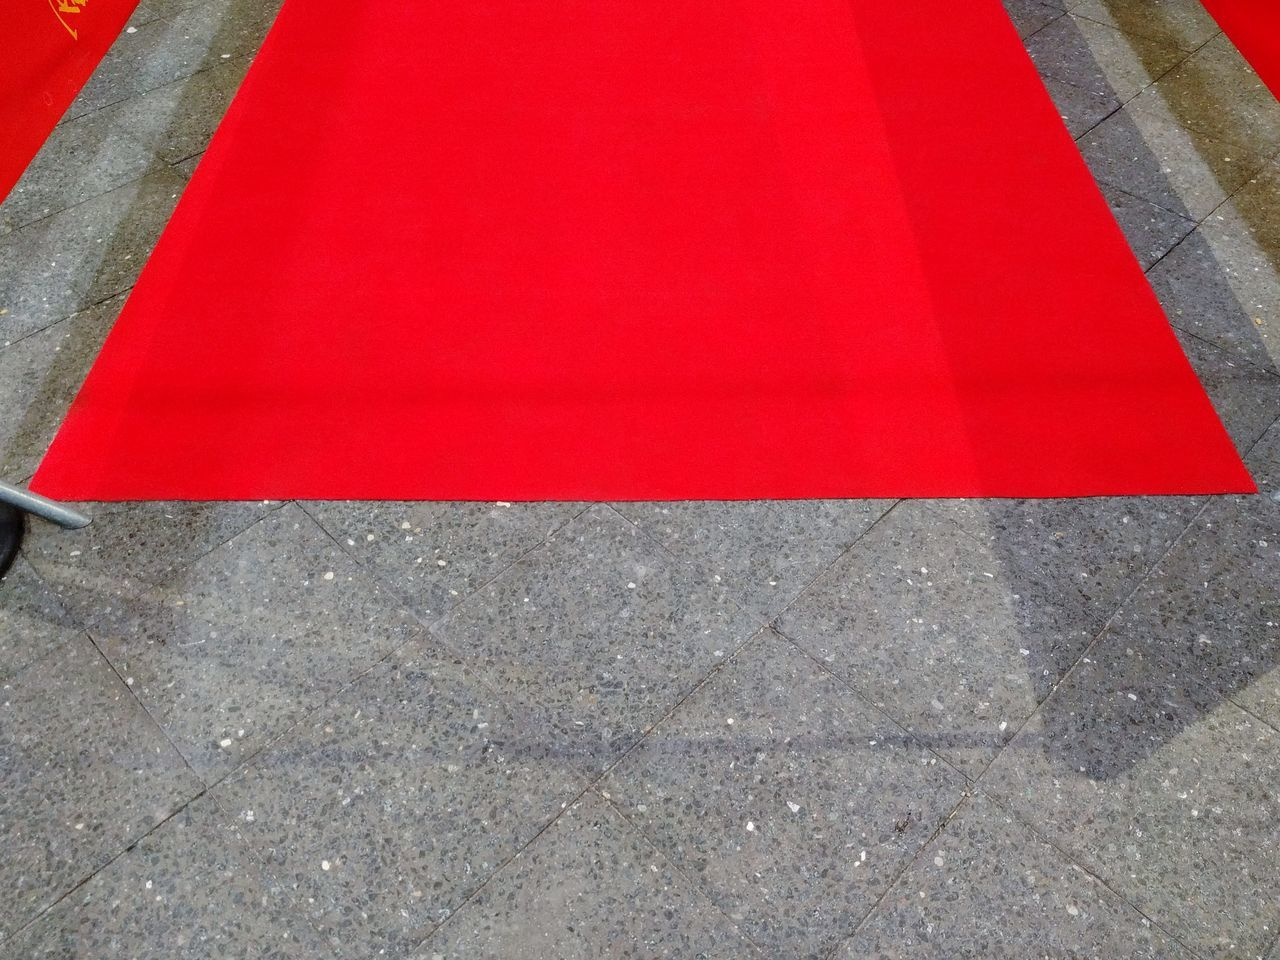 Red Close-up No People Textured  Day Outdoors Abstract Red Carpet Backgrounds Red Background Red Transmediale Berlinale Berlinale 2017